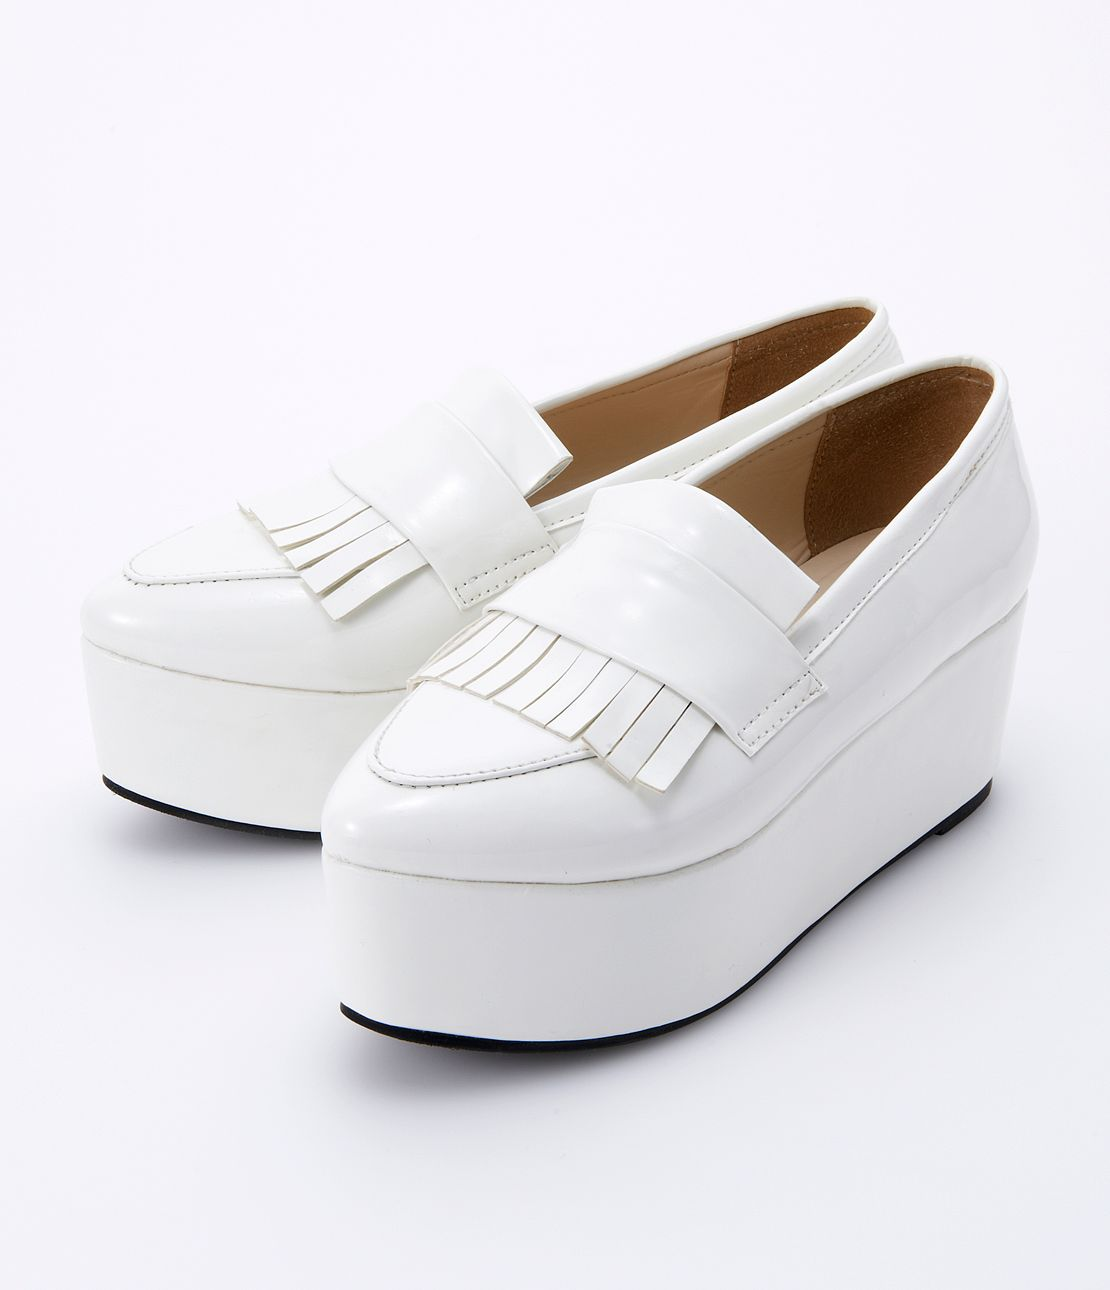 Fringe plat form shoes